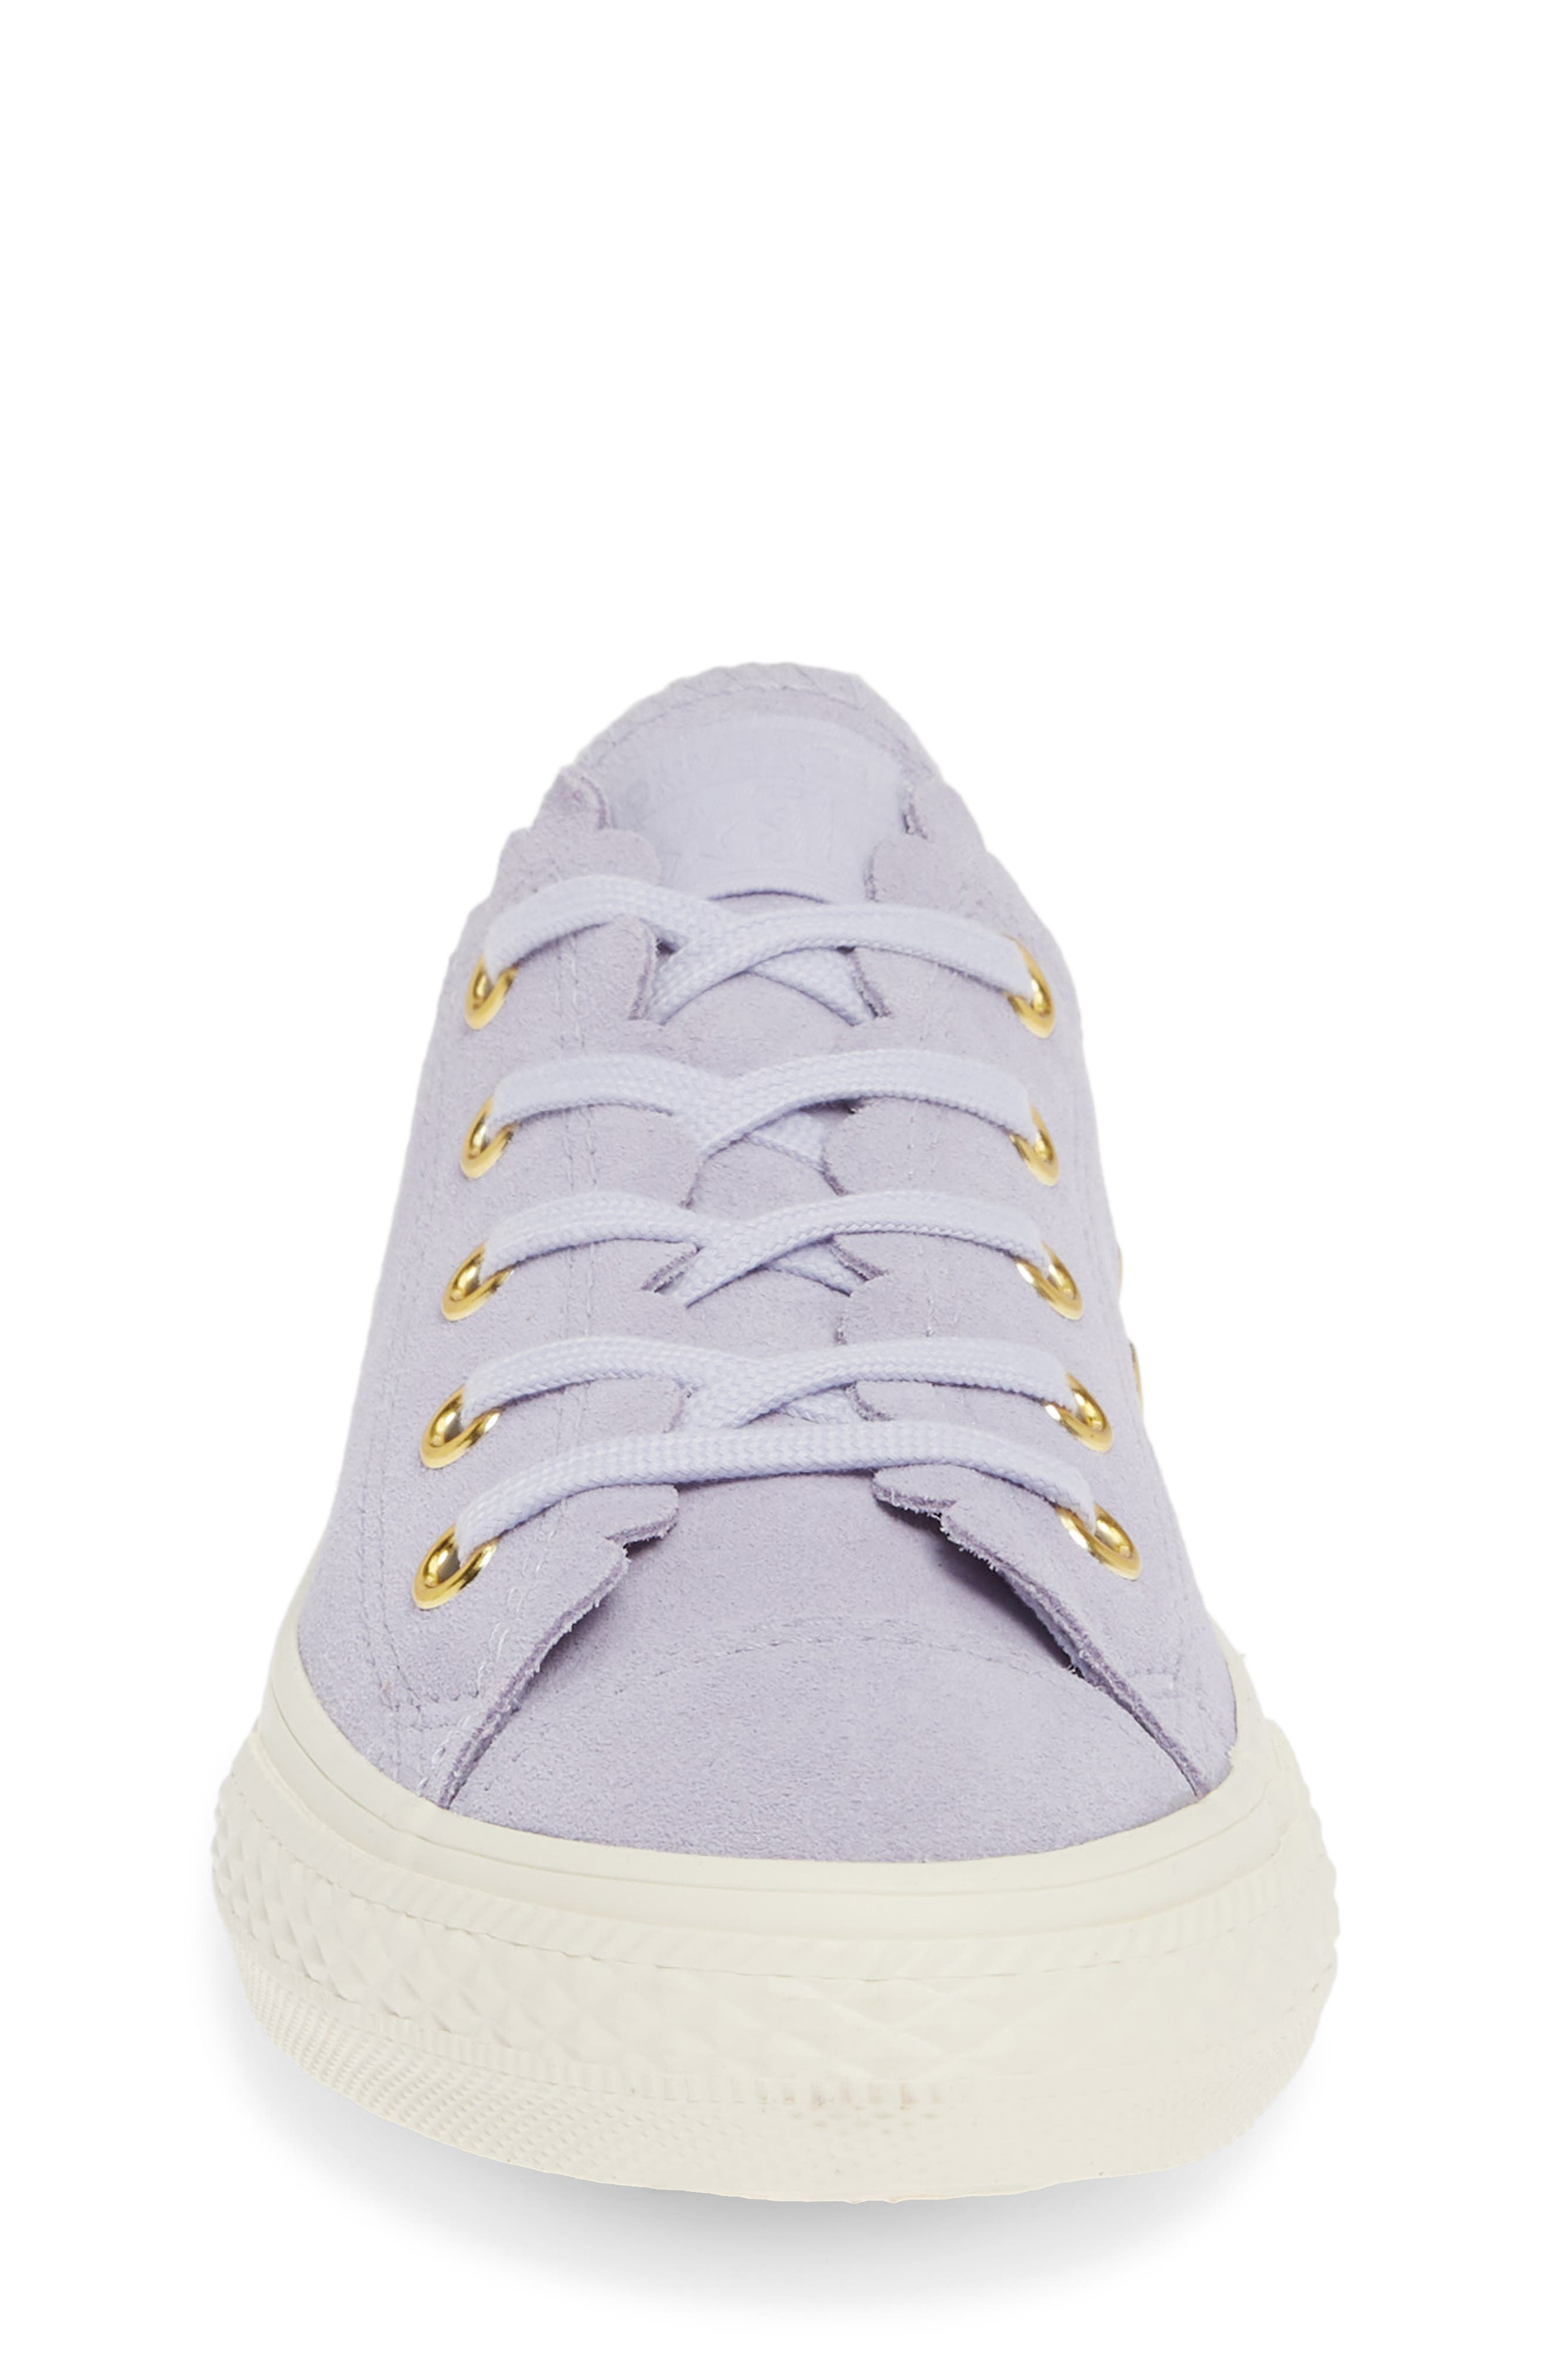 CONVERSE, Chuck Taylor<sup>®</sup> All Star<sup>®</sup> Ox Scallop Sneaker, Alternate thumbnail 4, color, OXYGEN PURPLE/ OXYGEN PURPLE